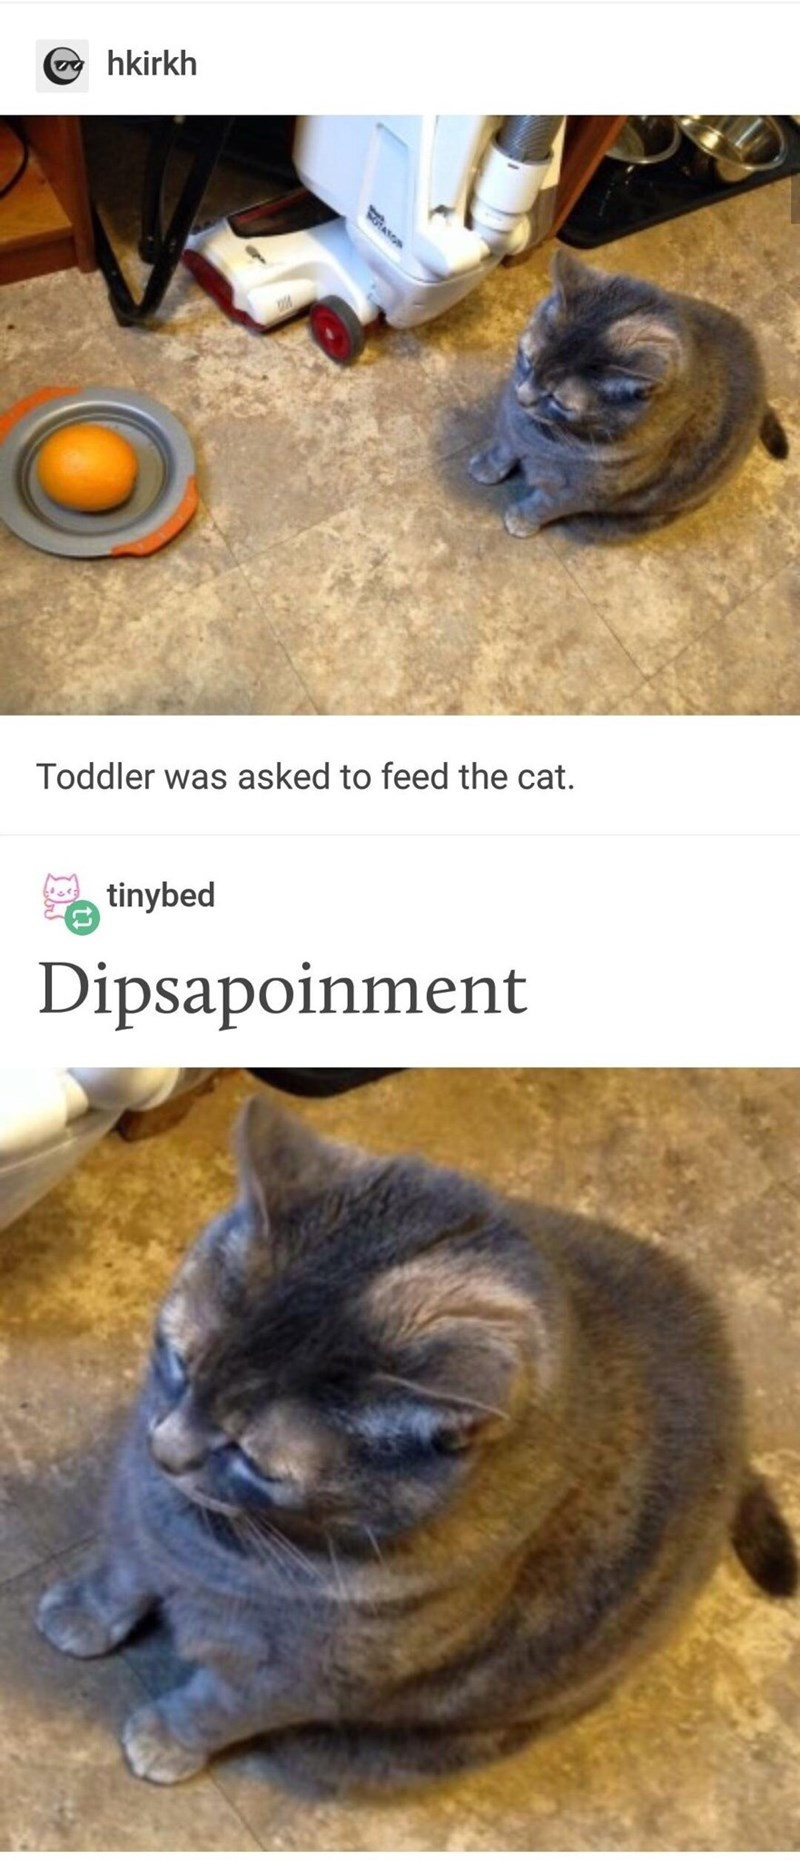 Wednesday meme Tumblr thread showing cat looking sadly at an orange in its food bowl